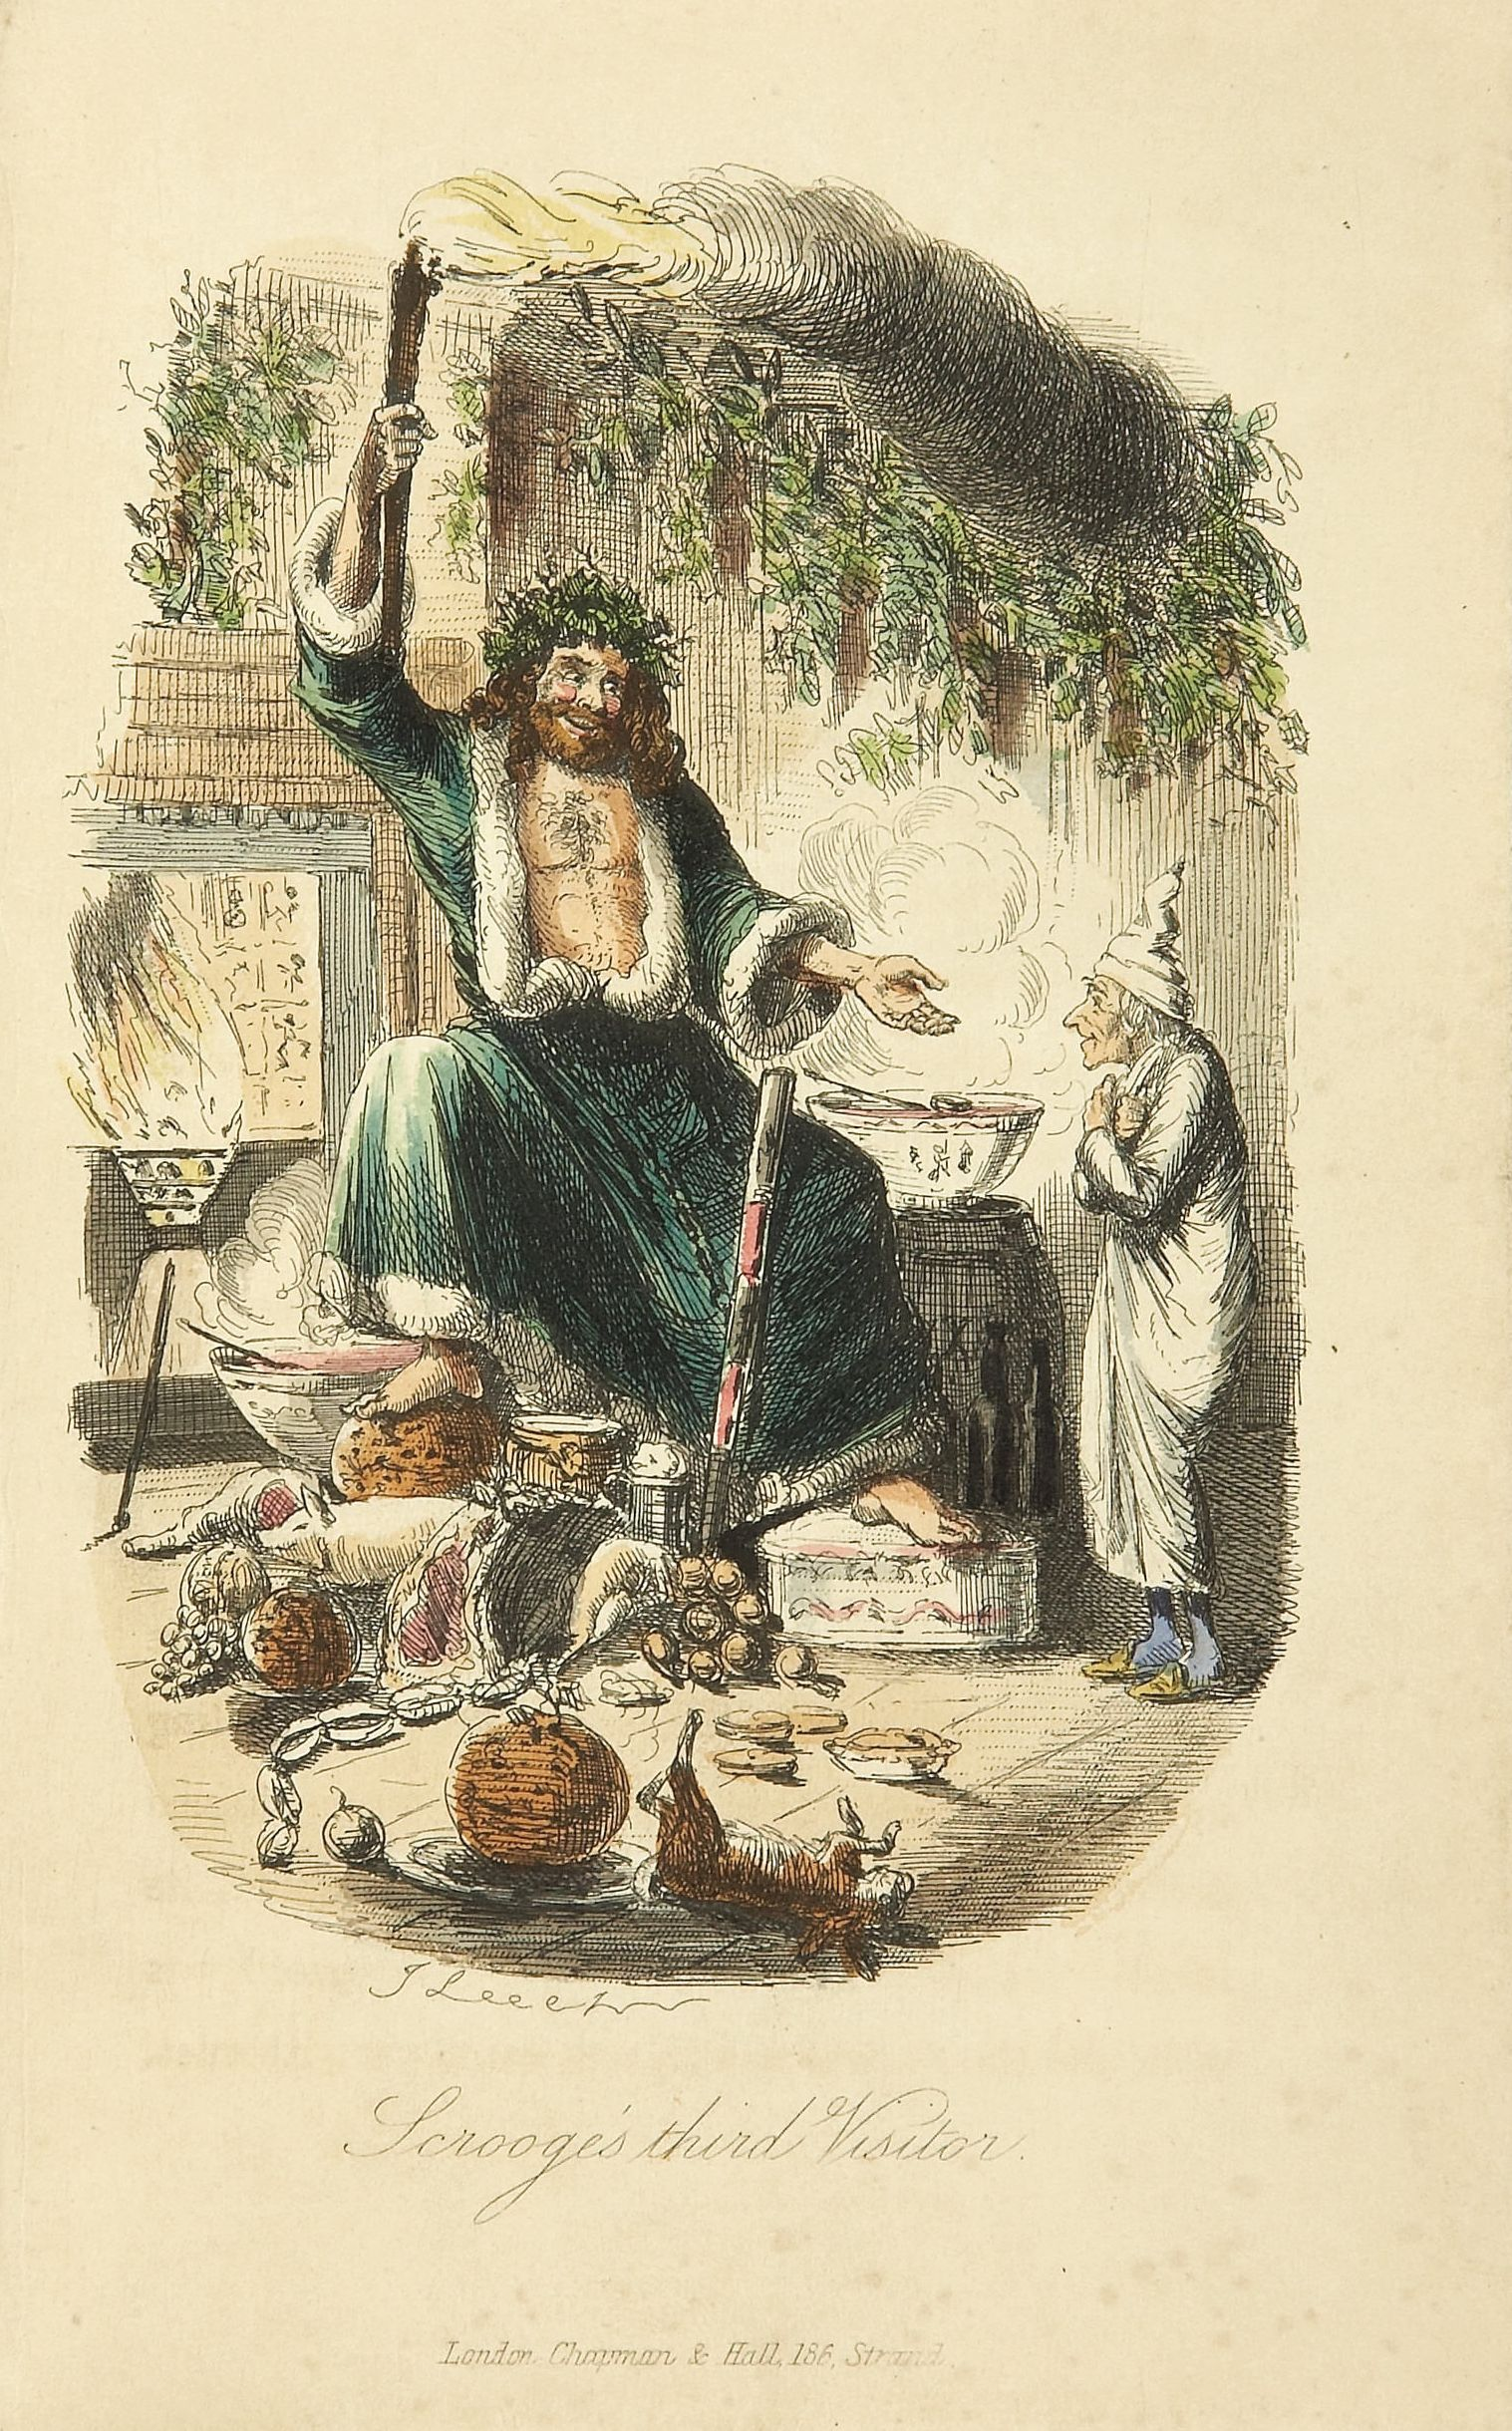 Christmas with Dickens: a new foodie exhibition comes to London